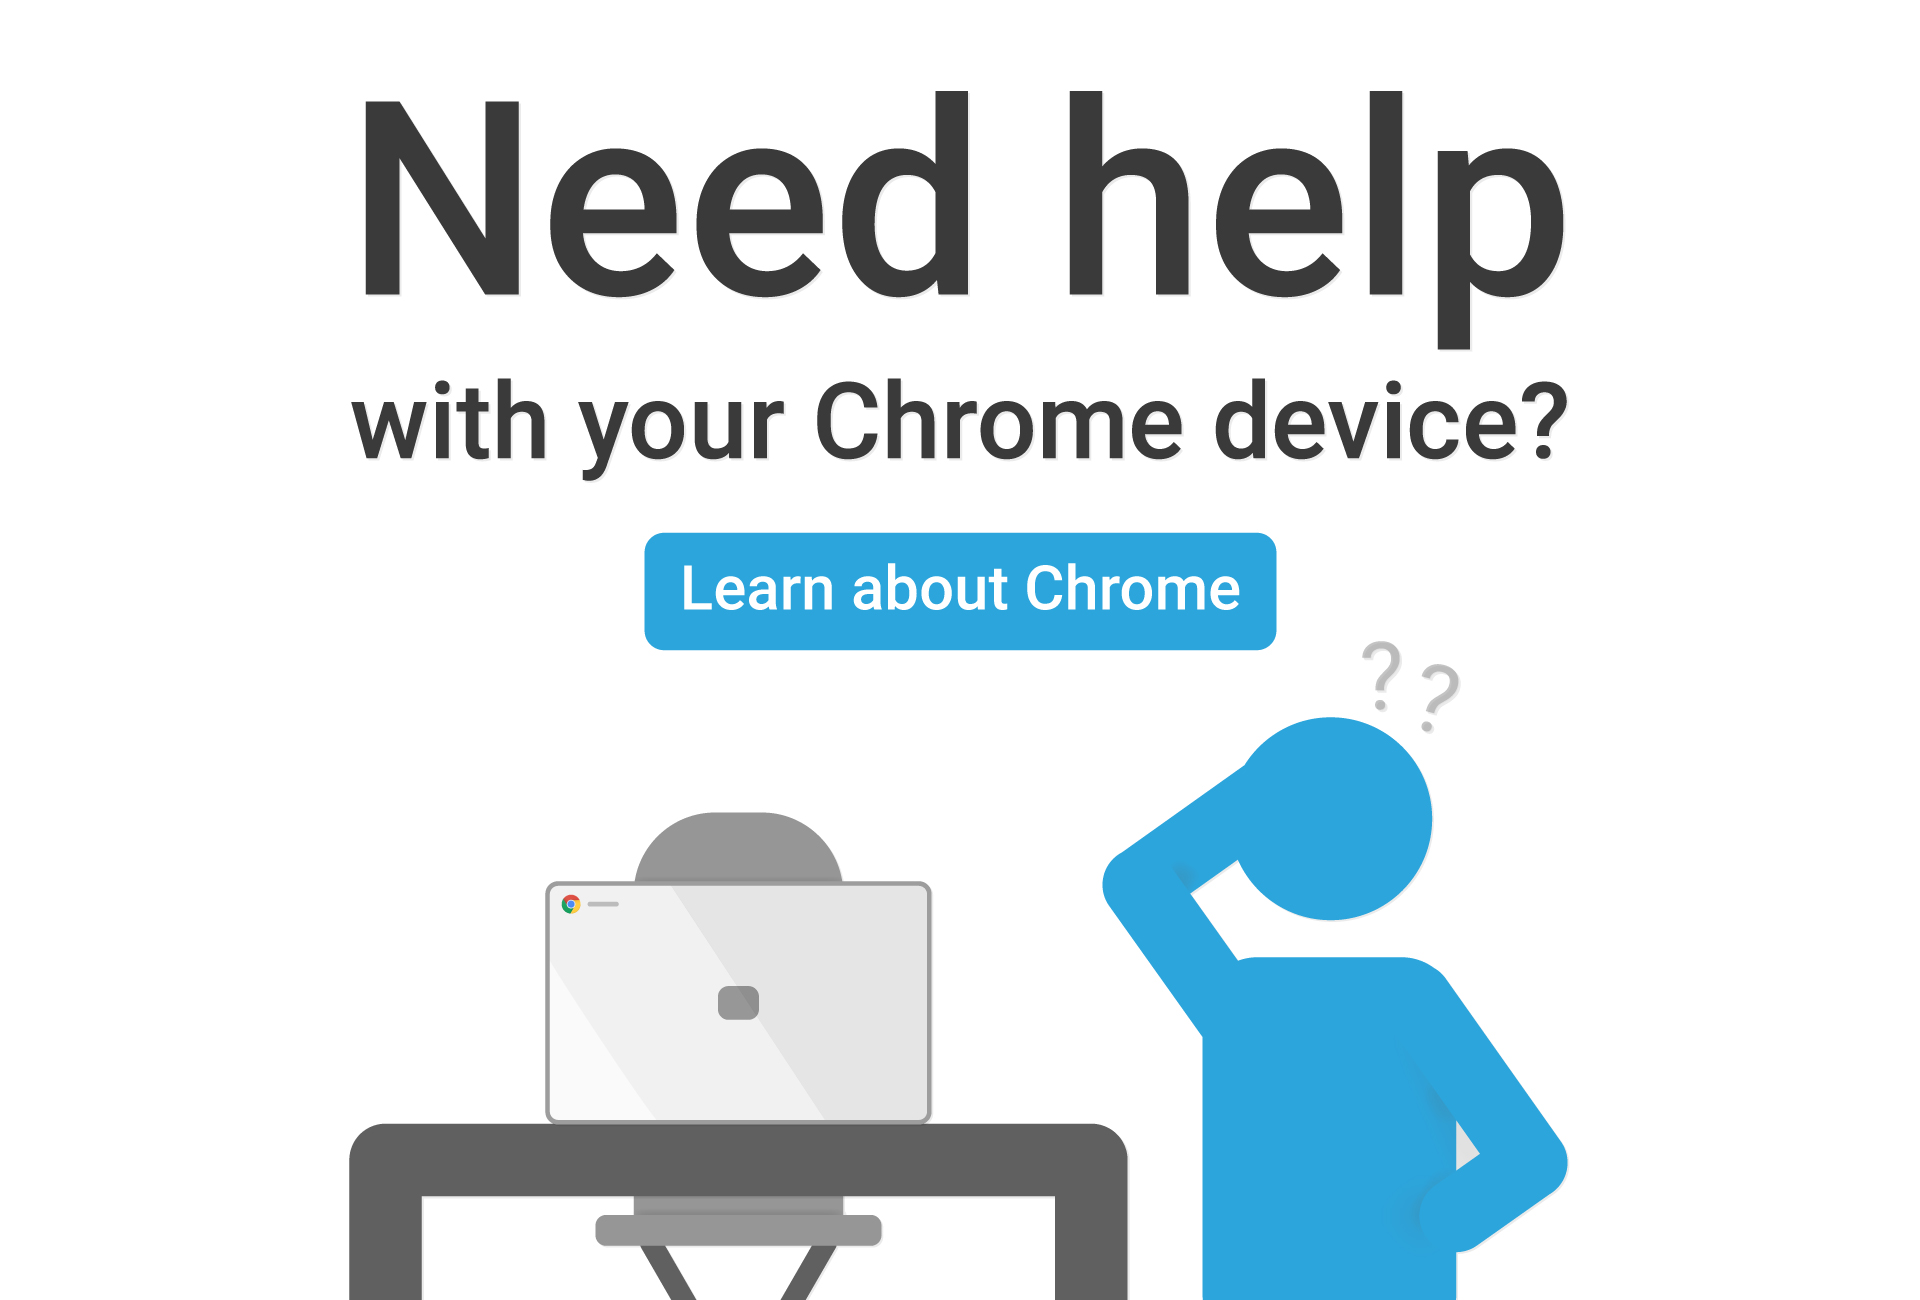 Need help with your Chrome device? Visit resources.promevo.com for help!